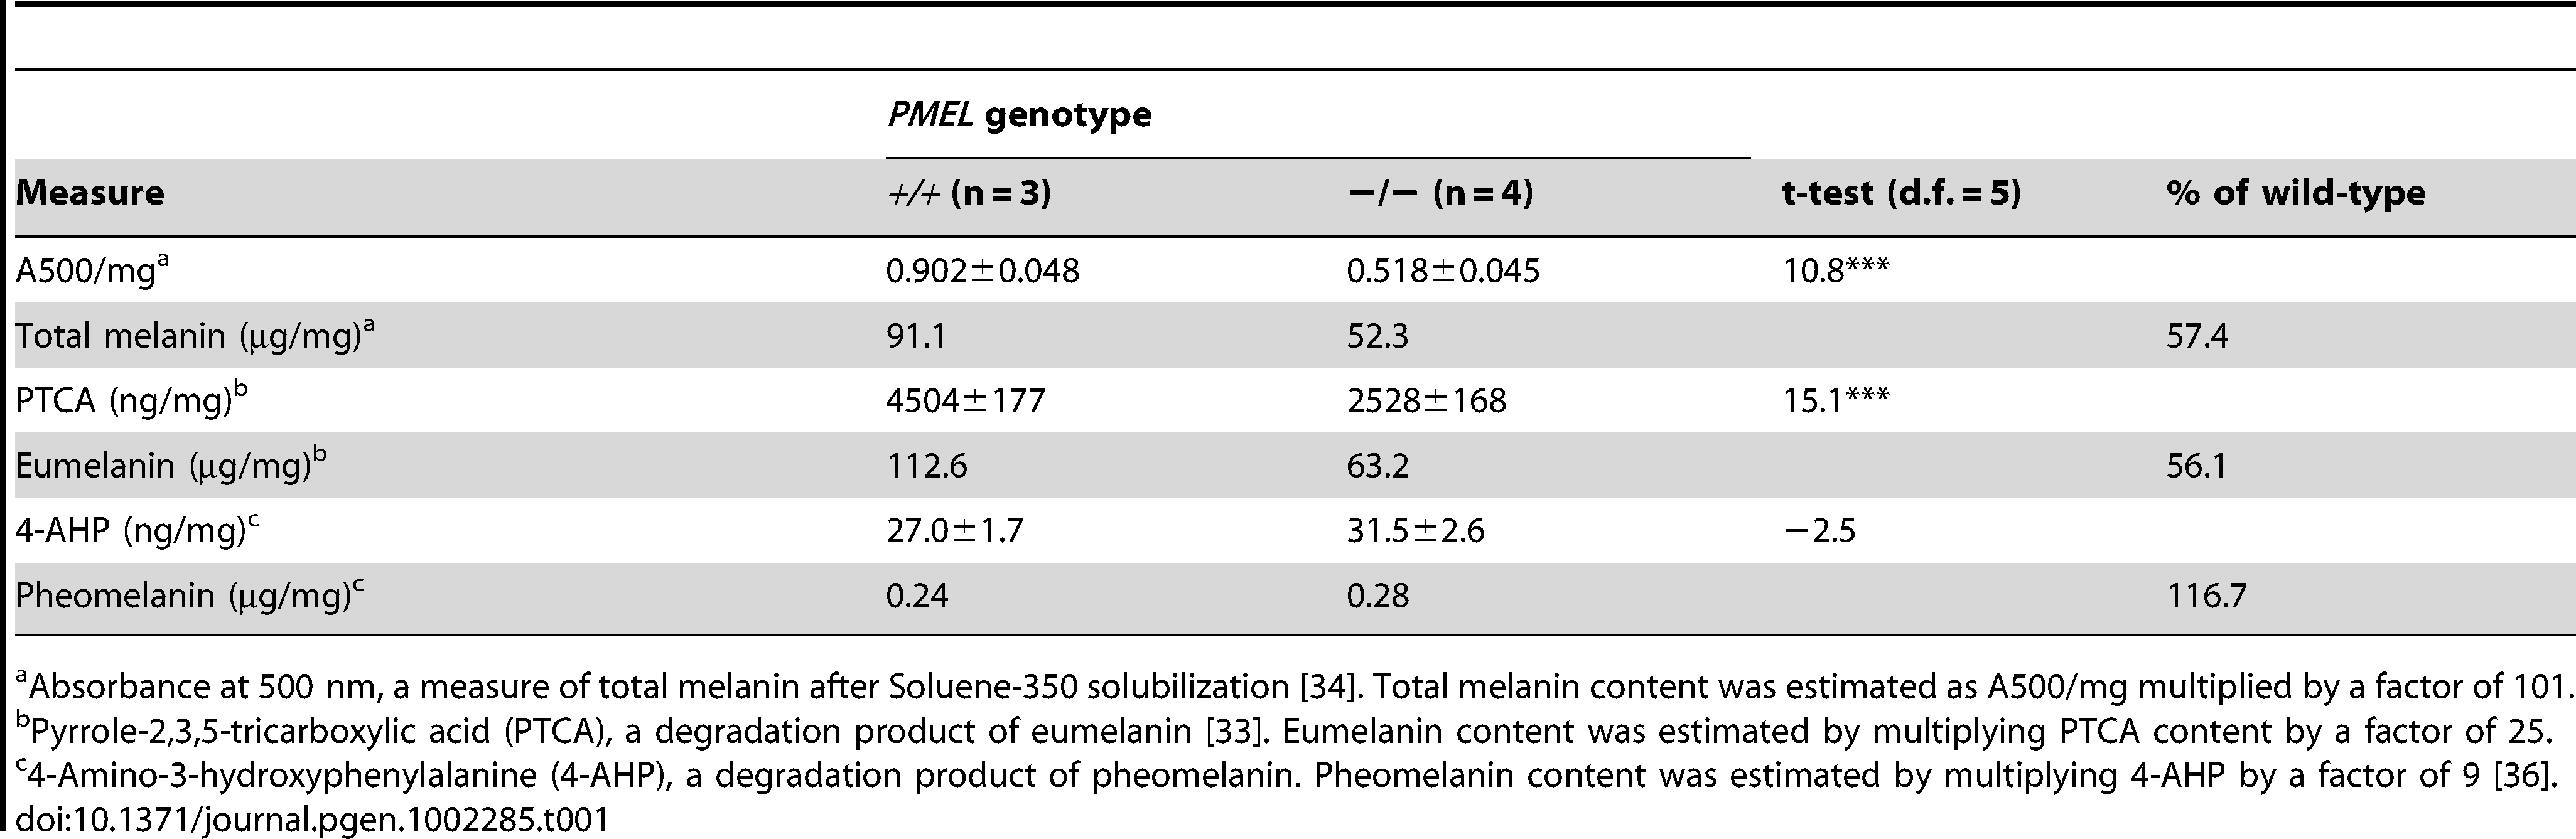 Content of total melanin, eumelanin, and pheomelanin in <i>wild-type</i> and <i>PMEL<sup>−/−</sup></i> mice on a C57BL/6 background (<i>Asip<sup>a/a</sup></i>).